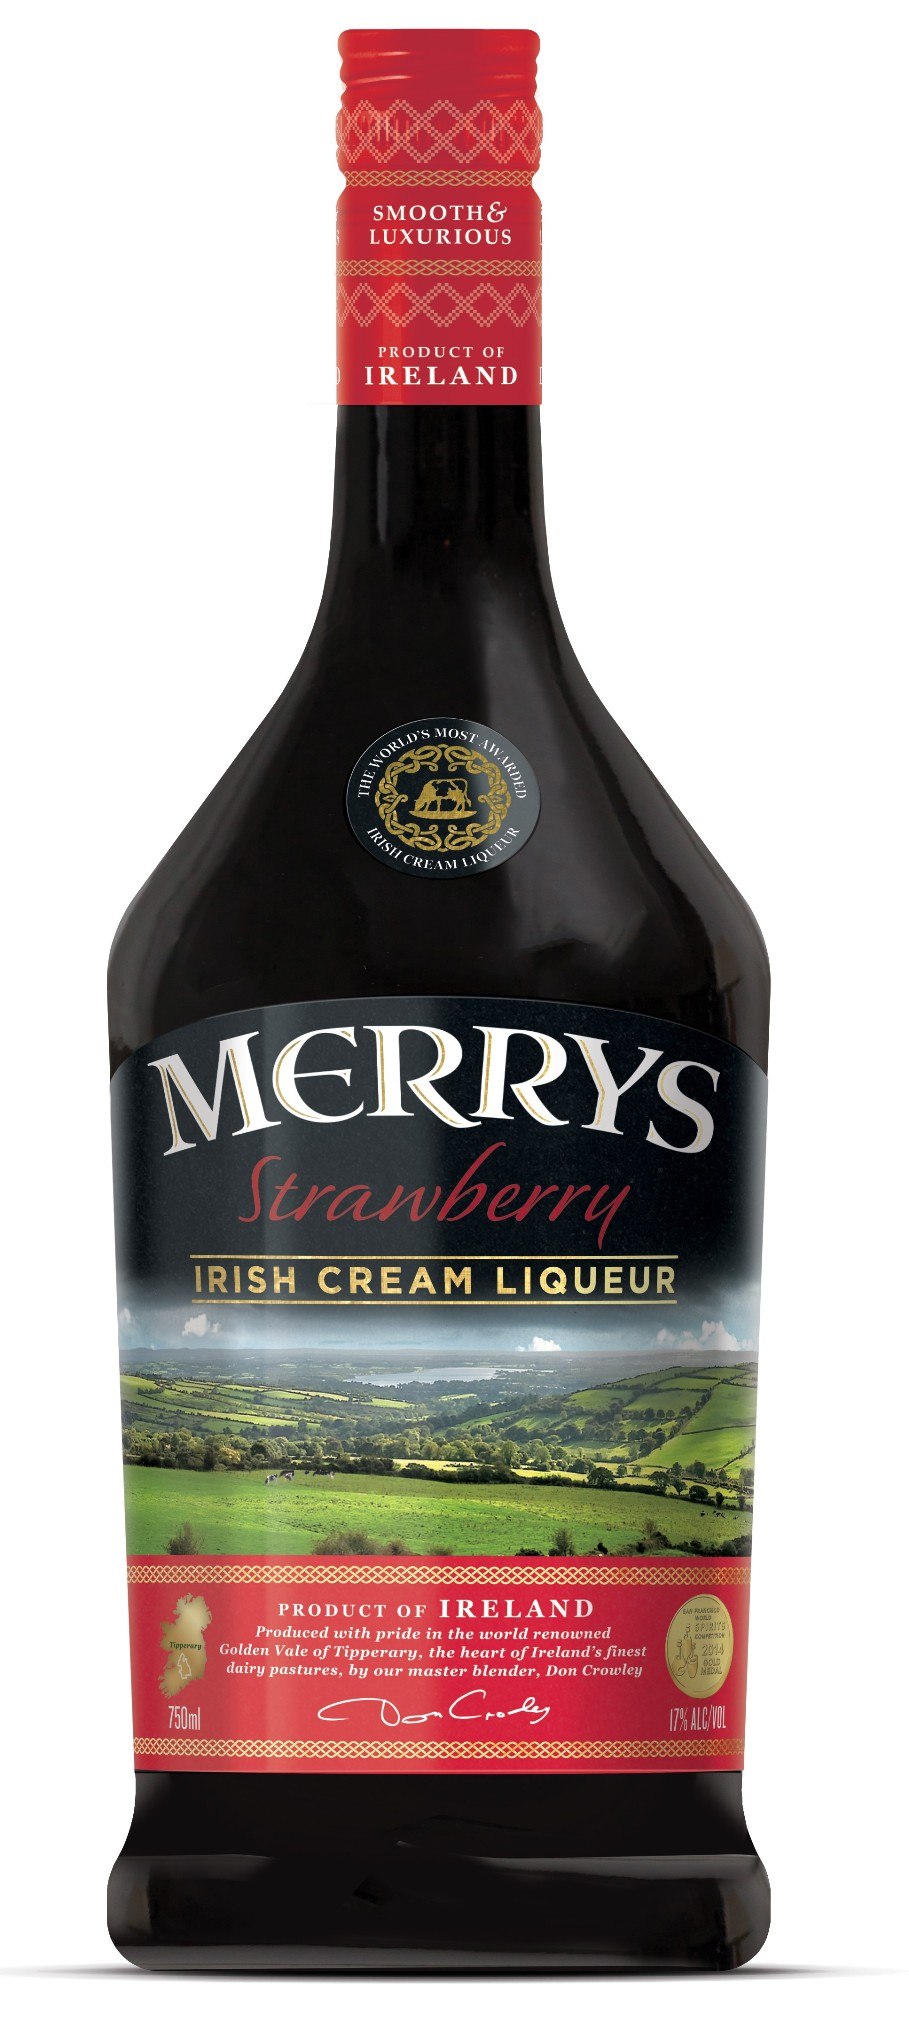 Merrys Strawberry Cream